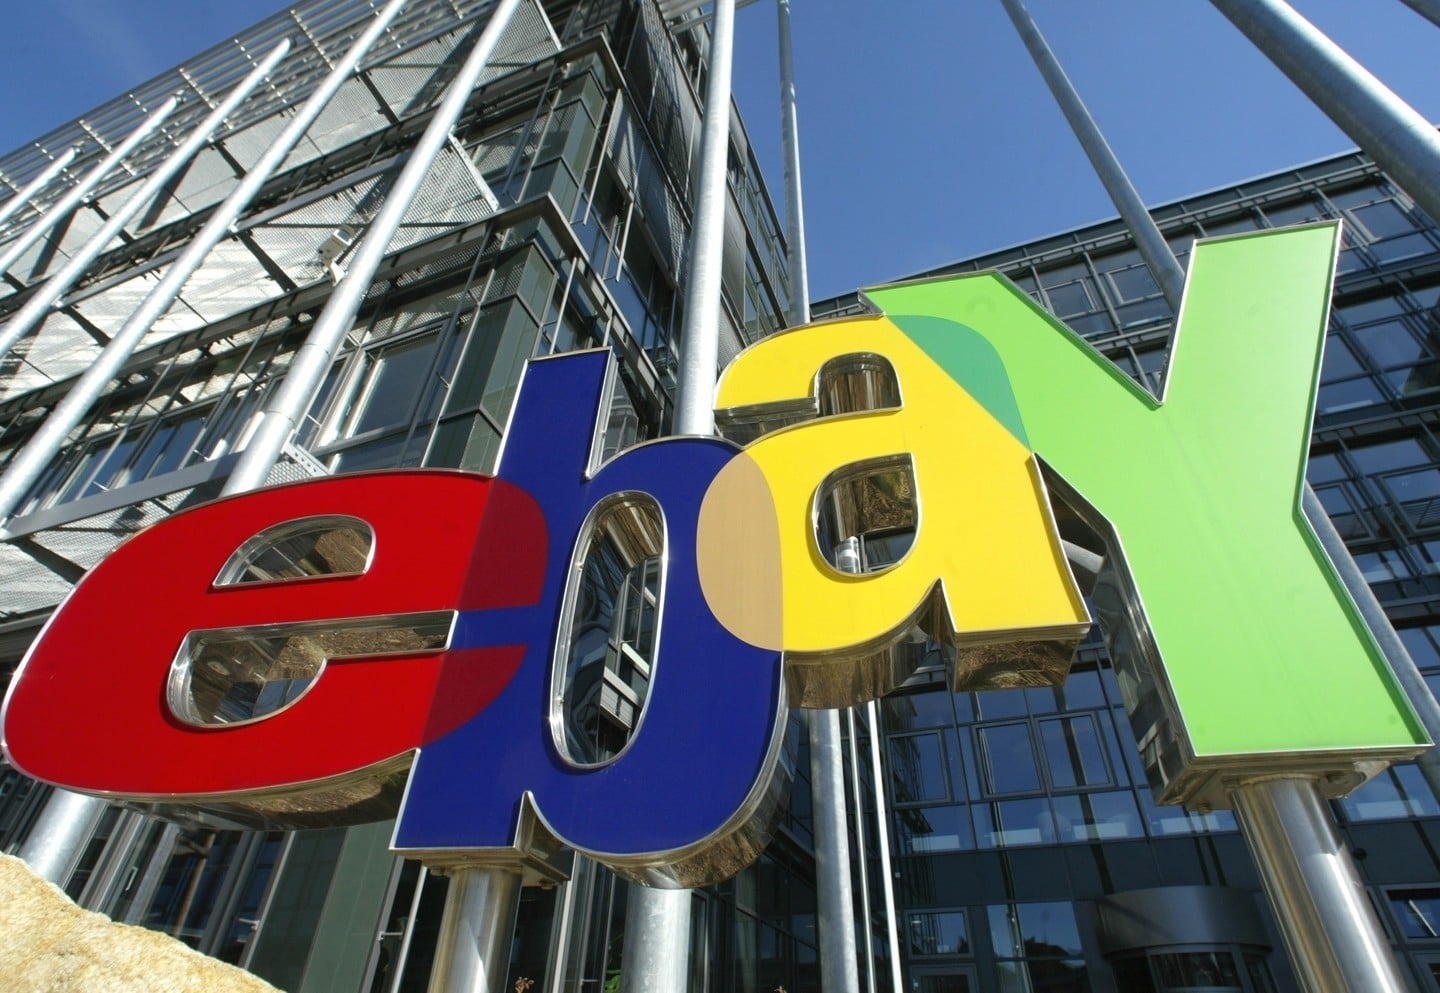 EBay Canada Coupon Offers 20% Off Everything-Today Only